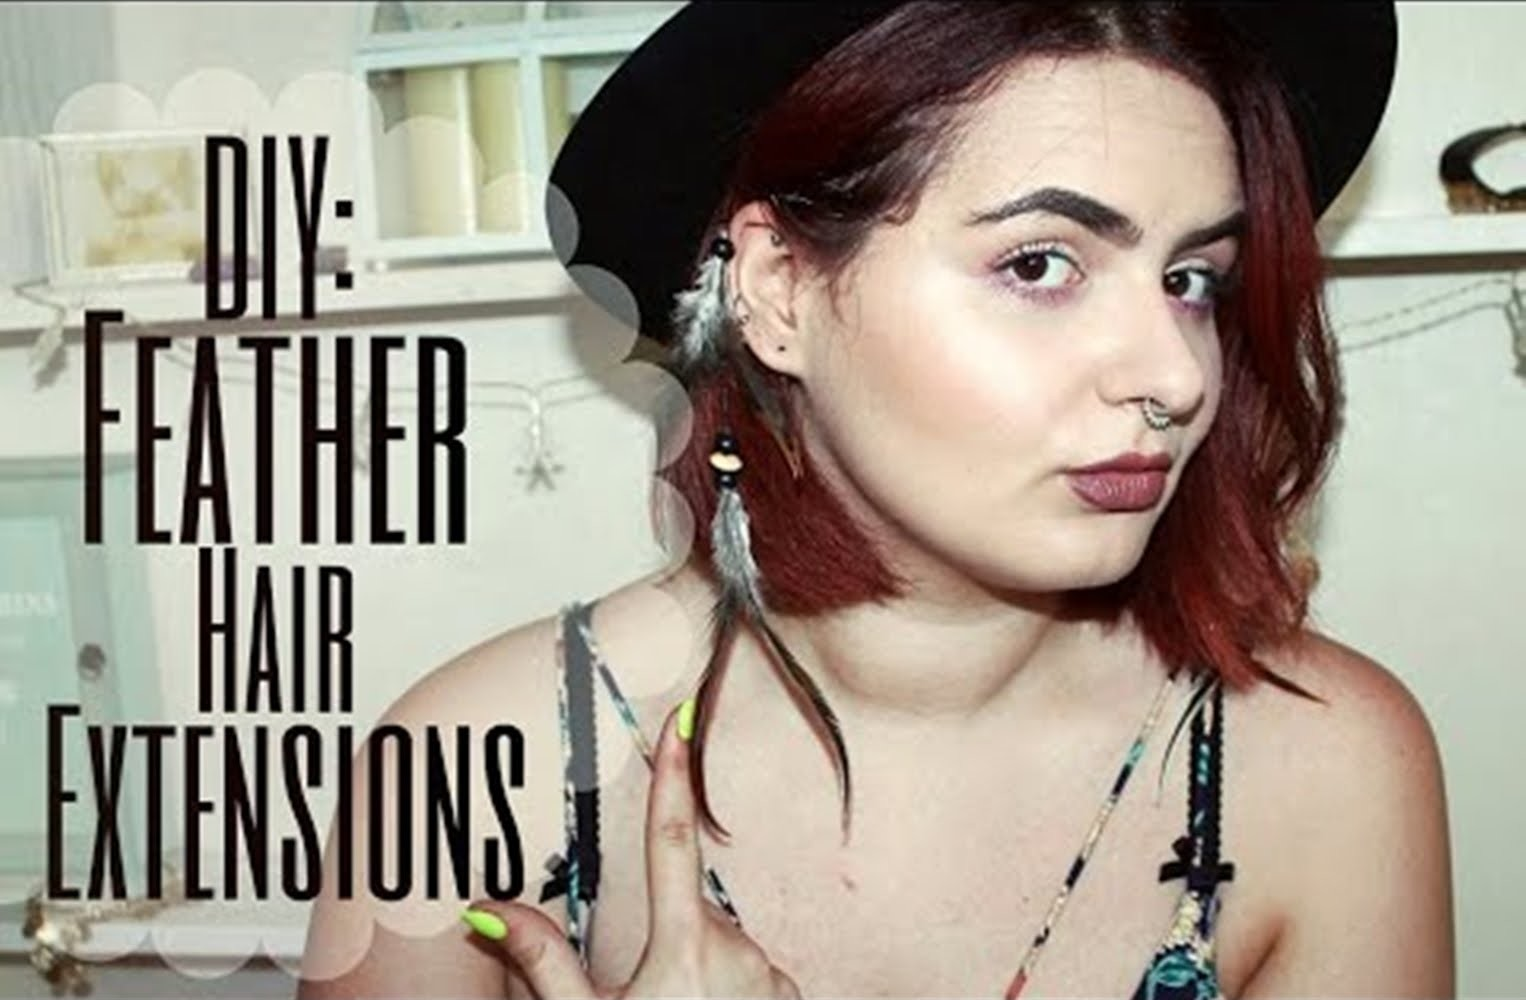 DIY: Feather Hair Extensions